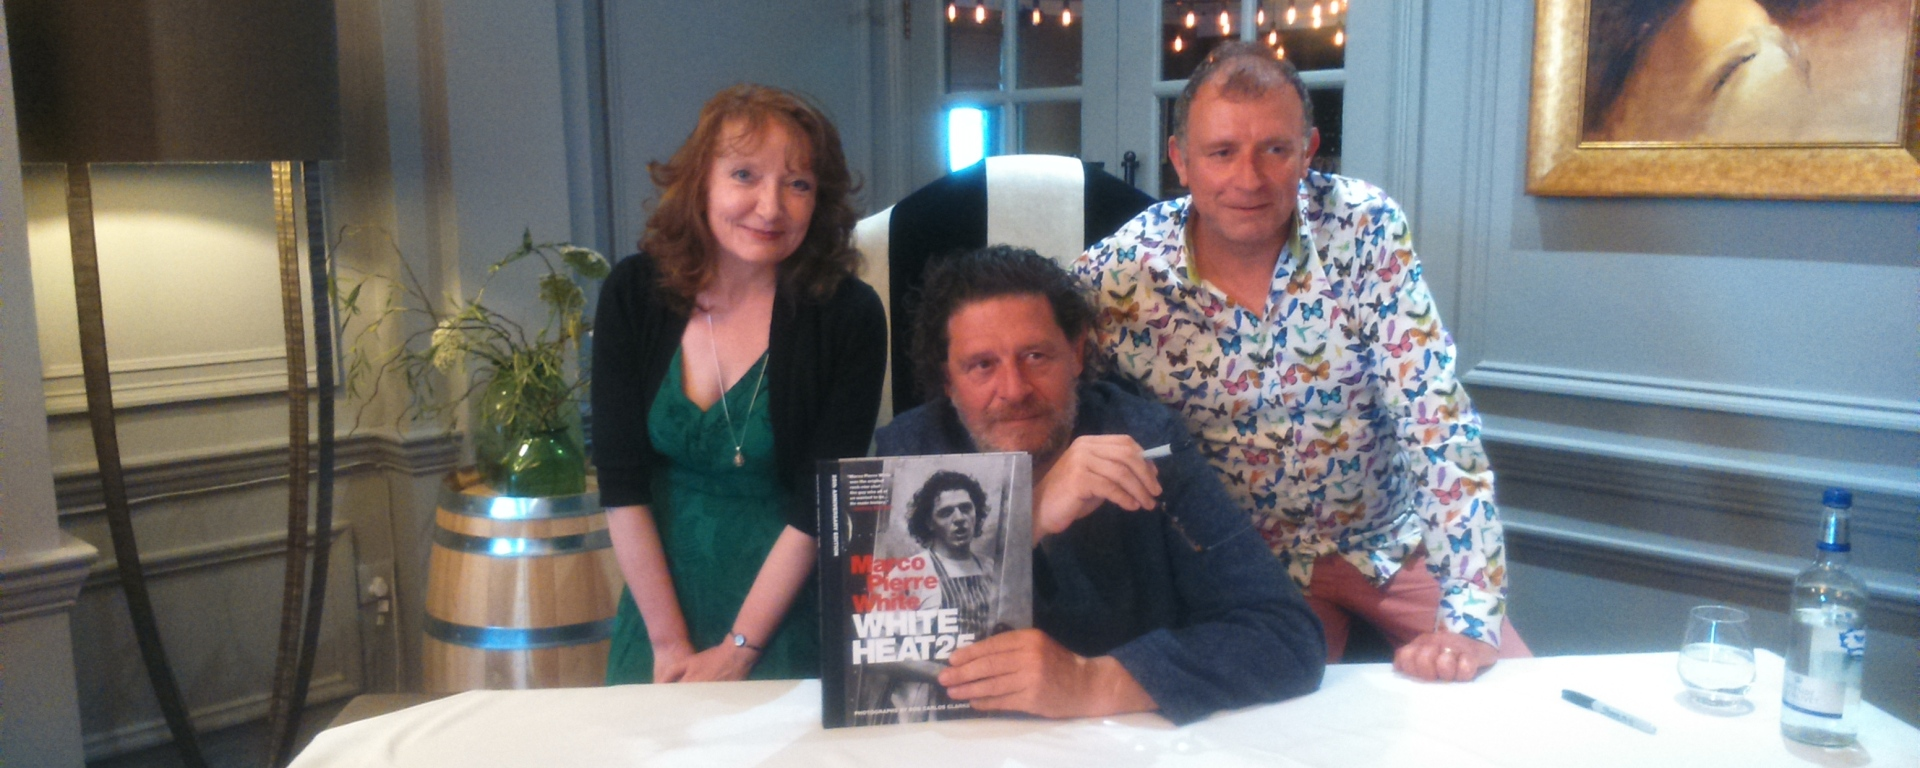 marco pierre white ali and jon davey